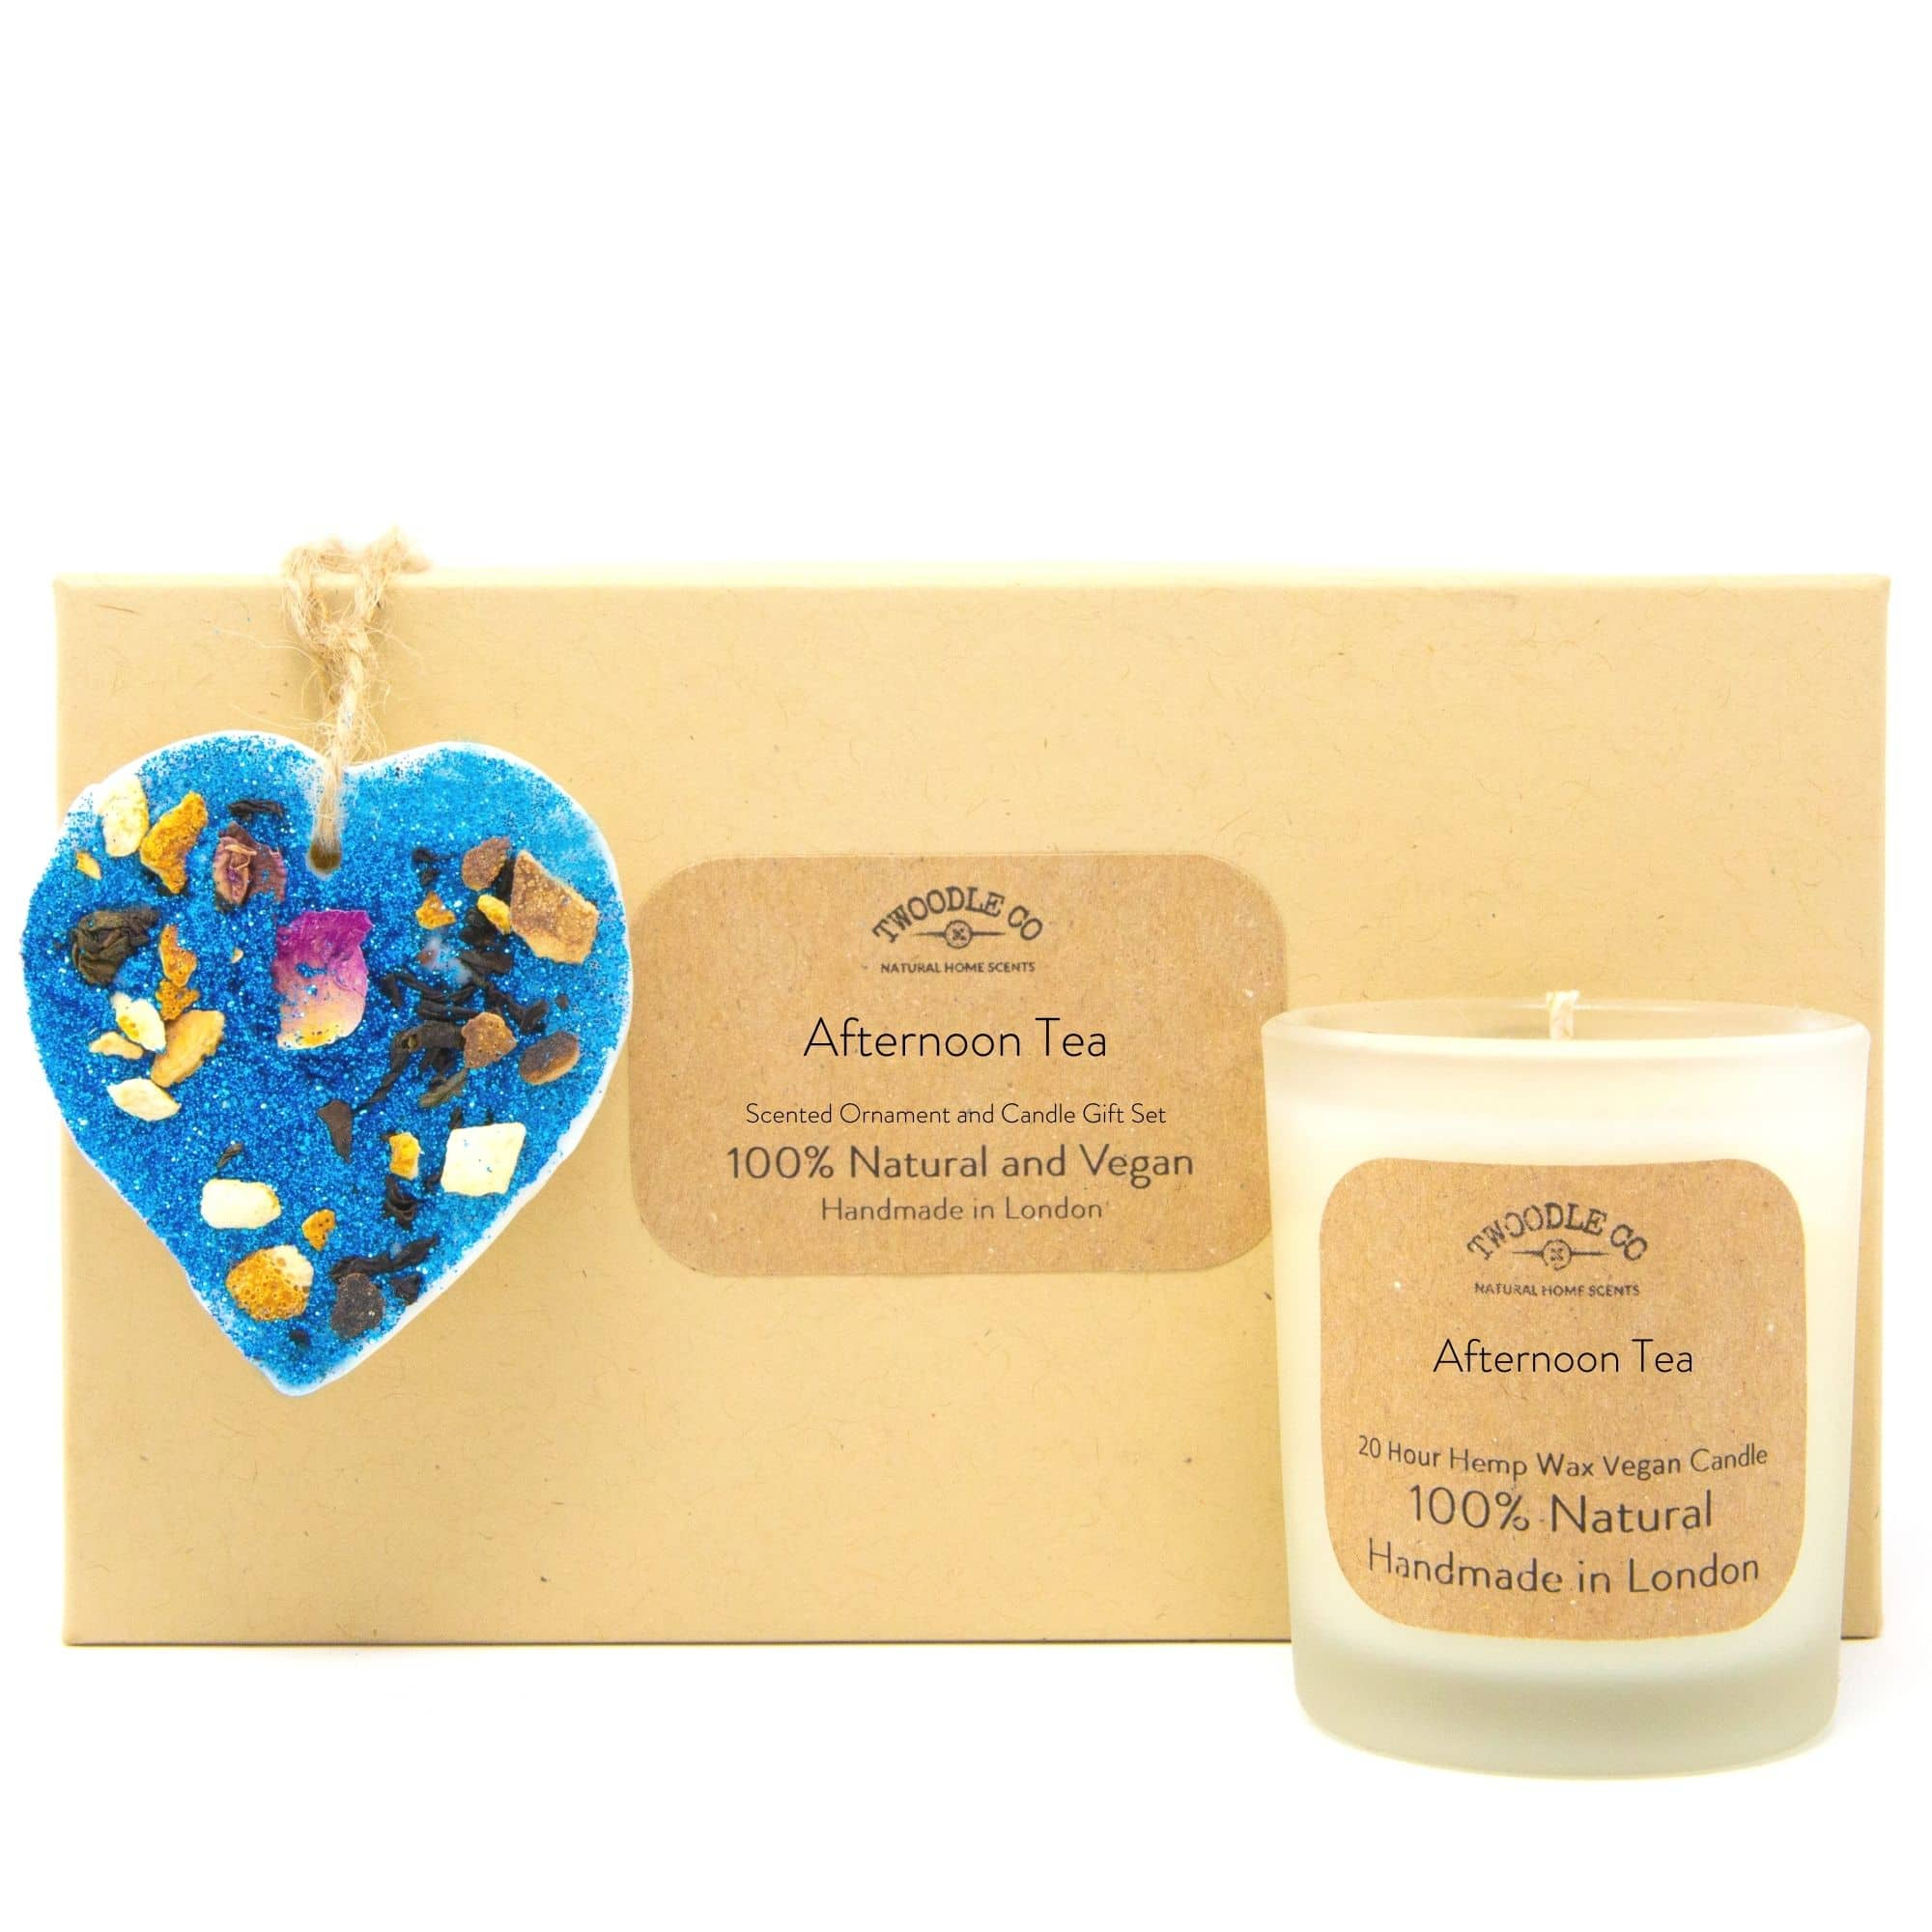 Afternoon Tea Scented Ornament and Candle Gift Set by twoodle co natural home scents